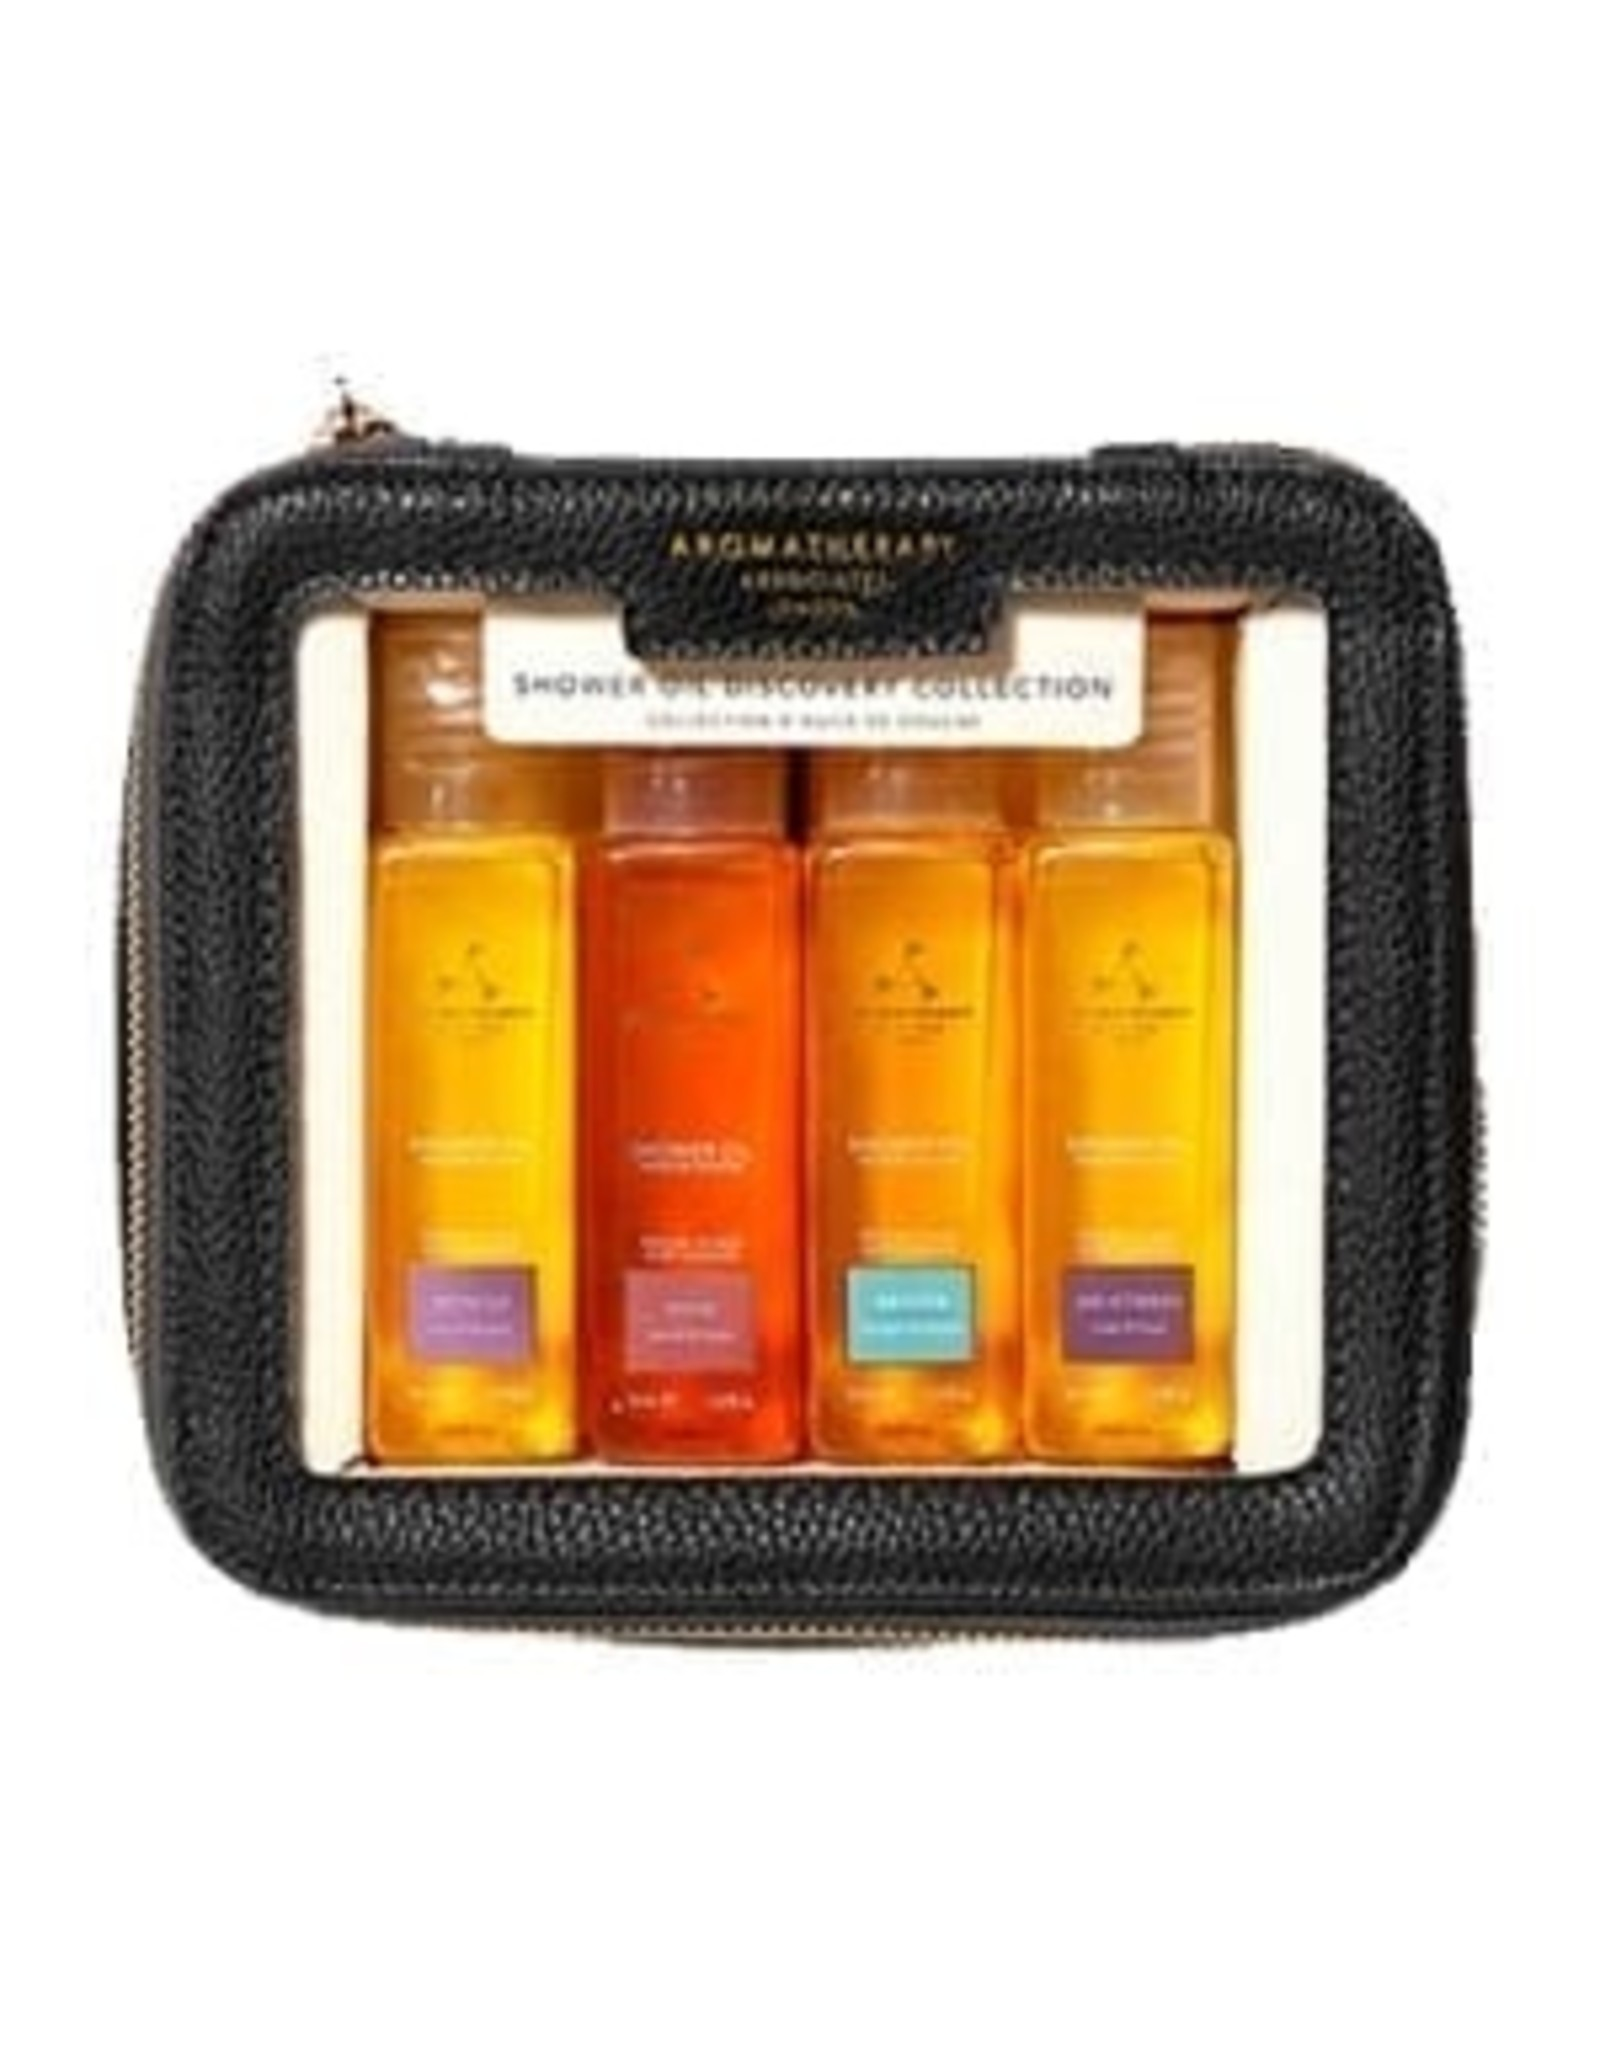 Aromatherapy Shower Oil Discovery Collection, 4x 50ml